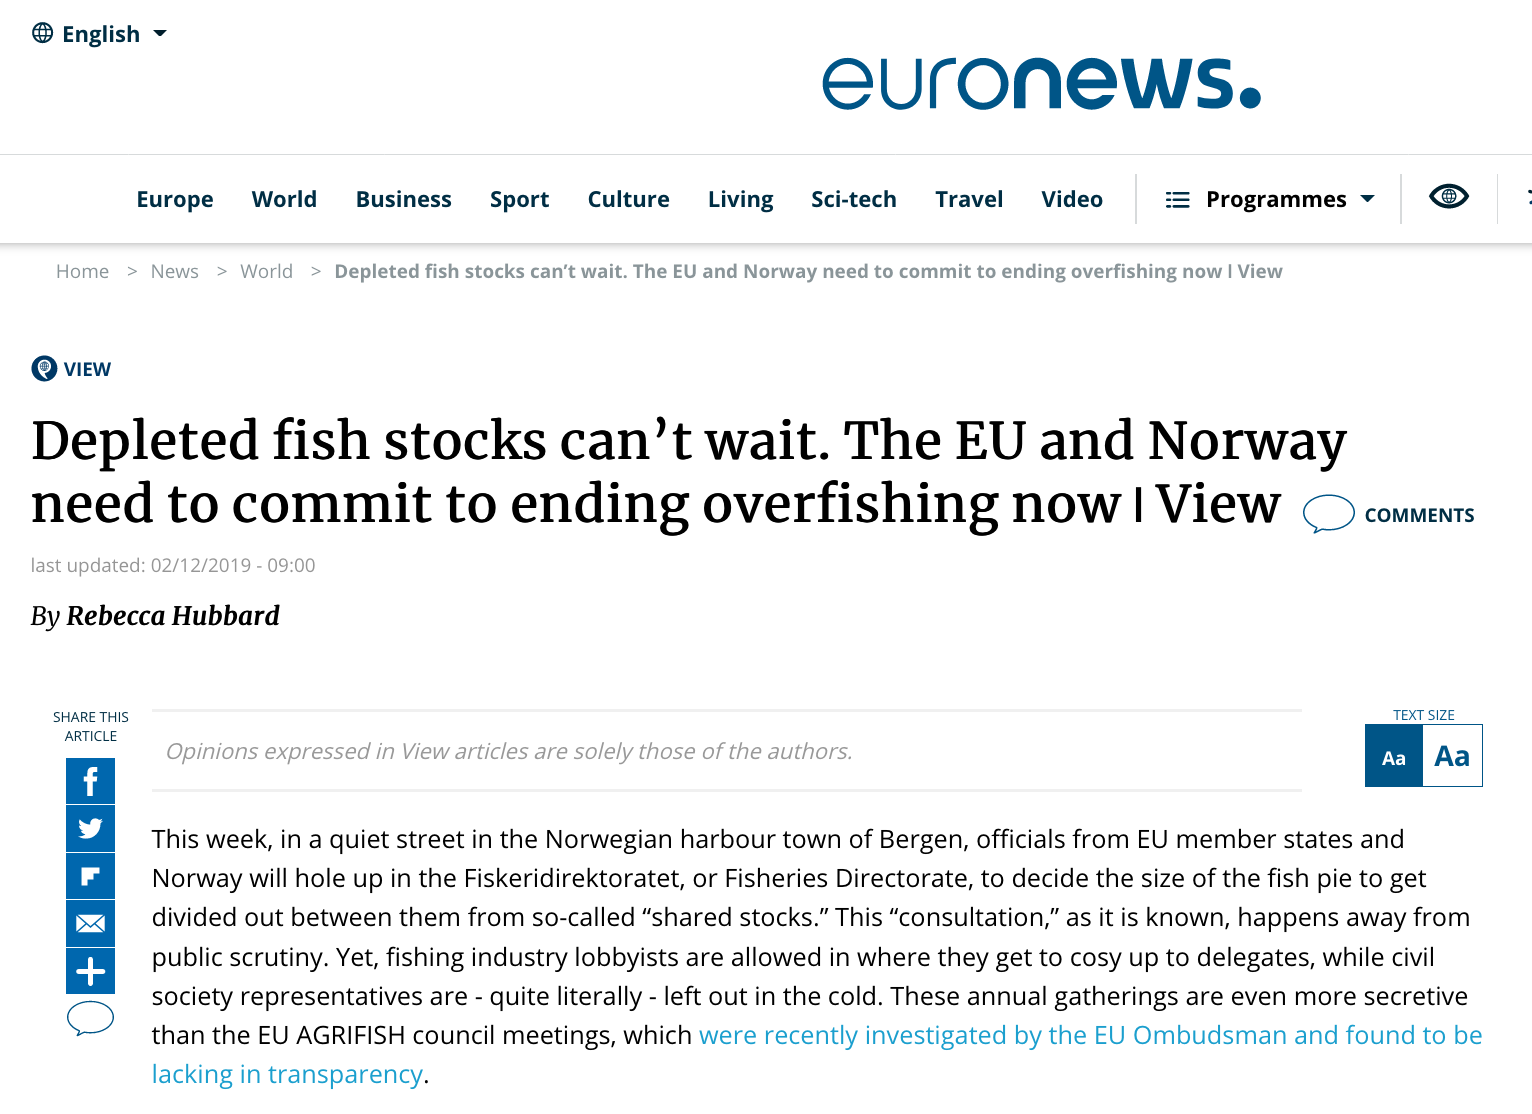 View Depleted fish stocks can't wait. The EU and Norway need to commit to ending overfishing now ǀ View